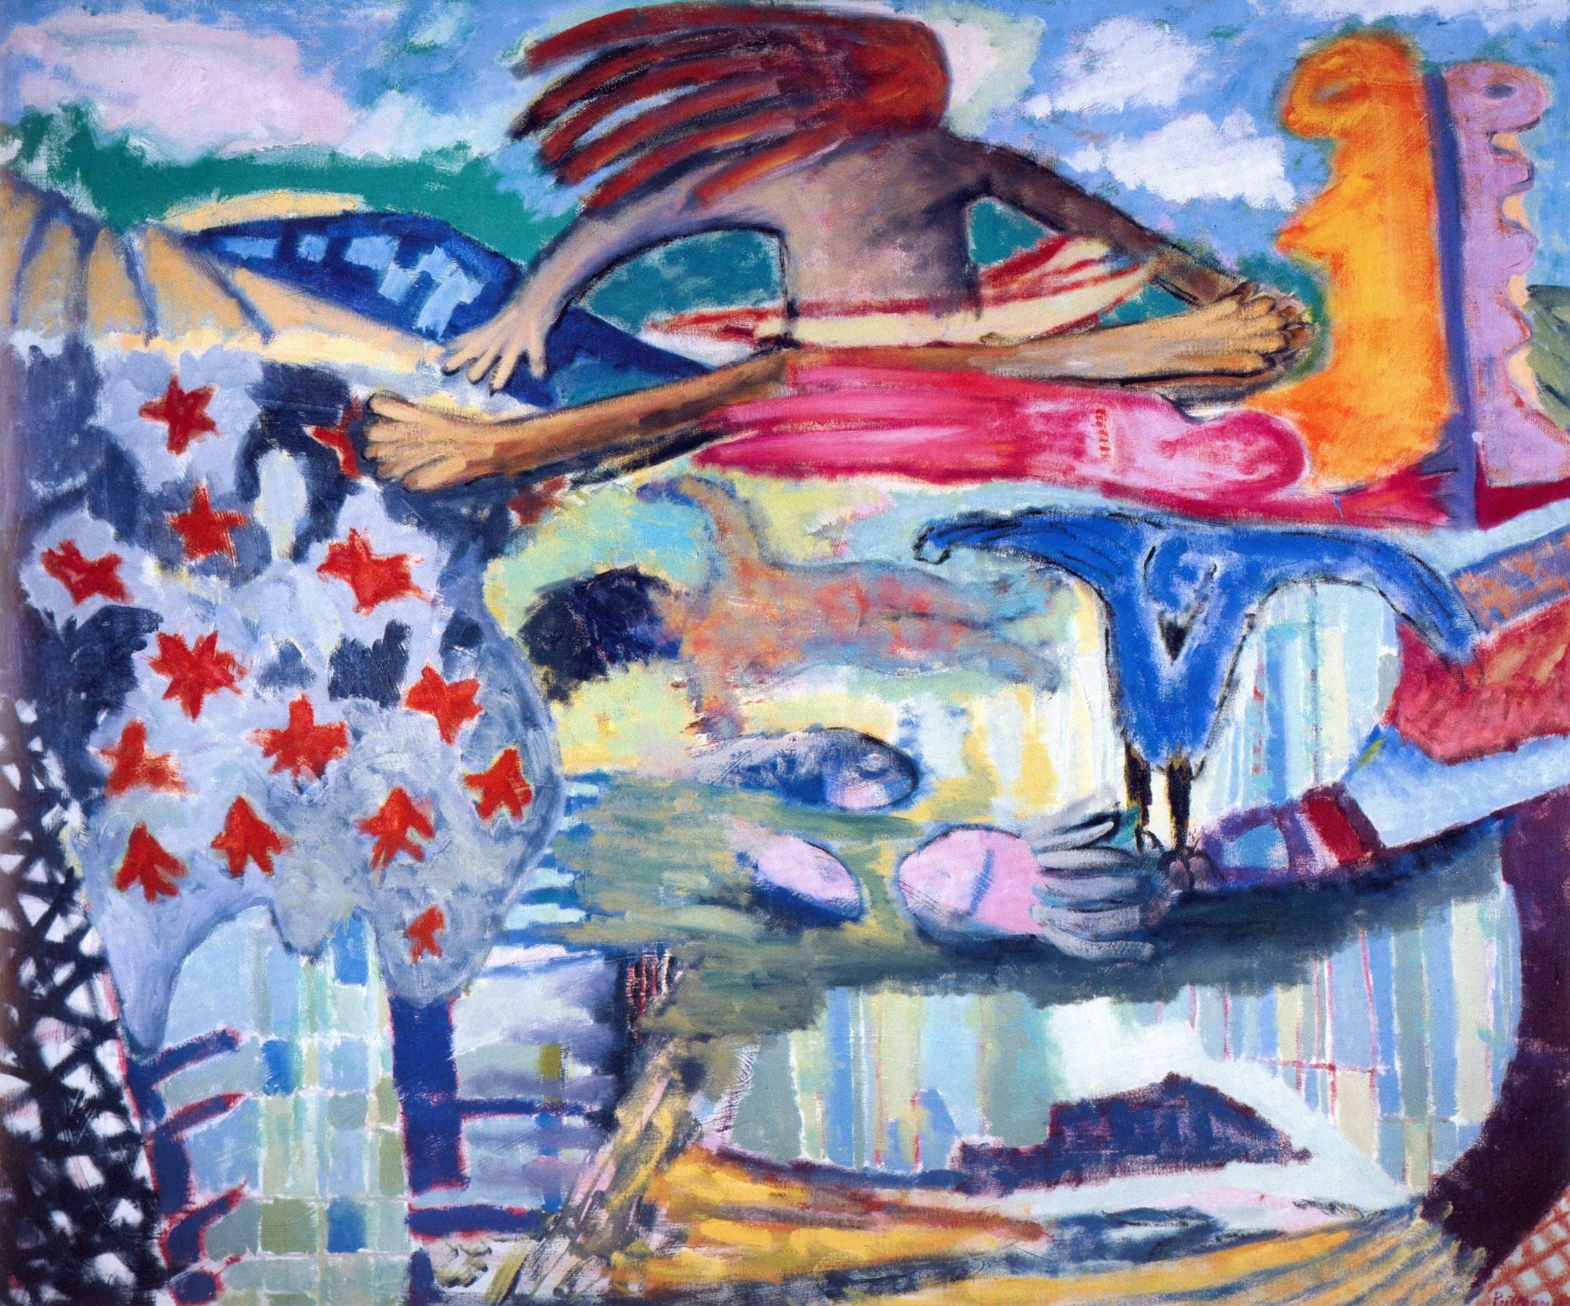 Metaphoric Fables   Oil on canvas, 60'' x 72'', 2004